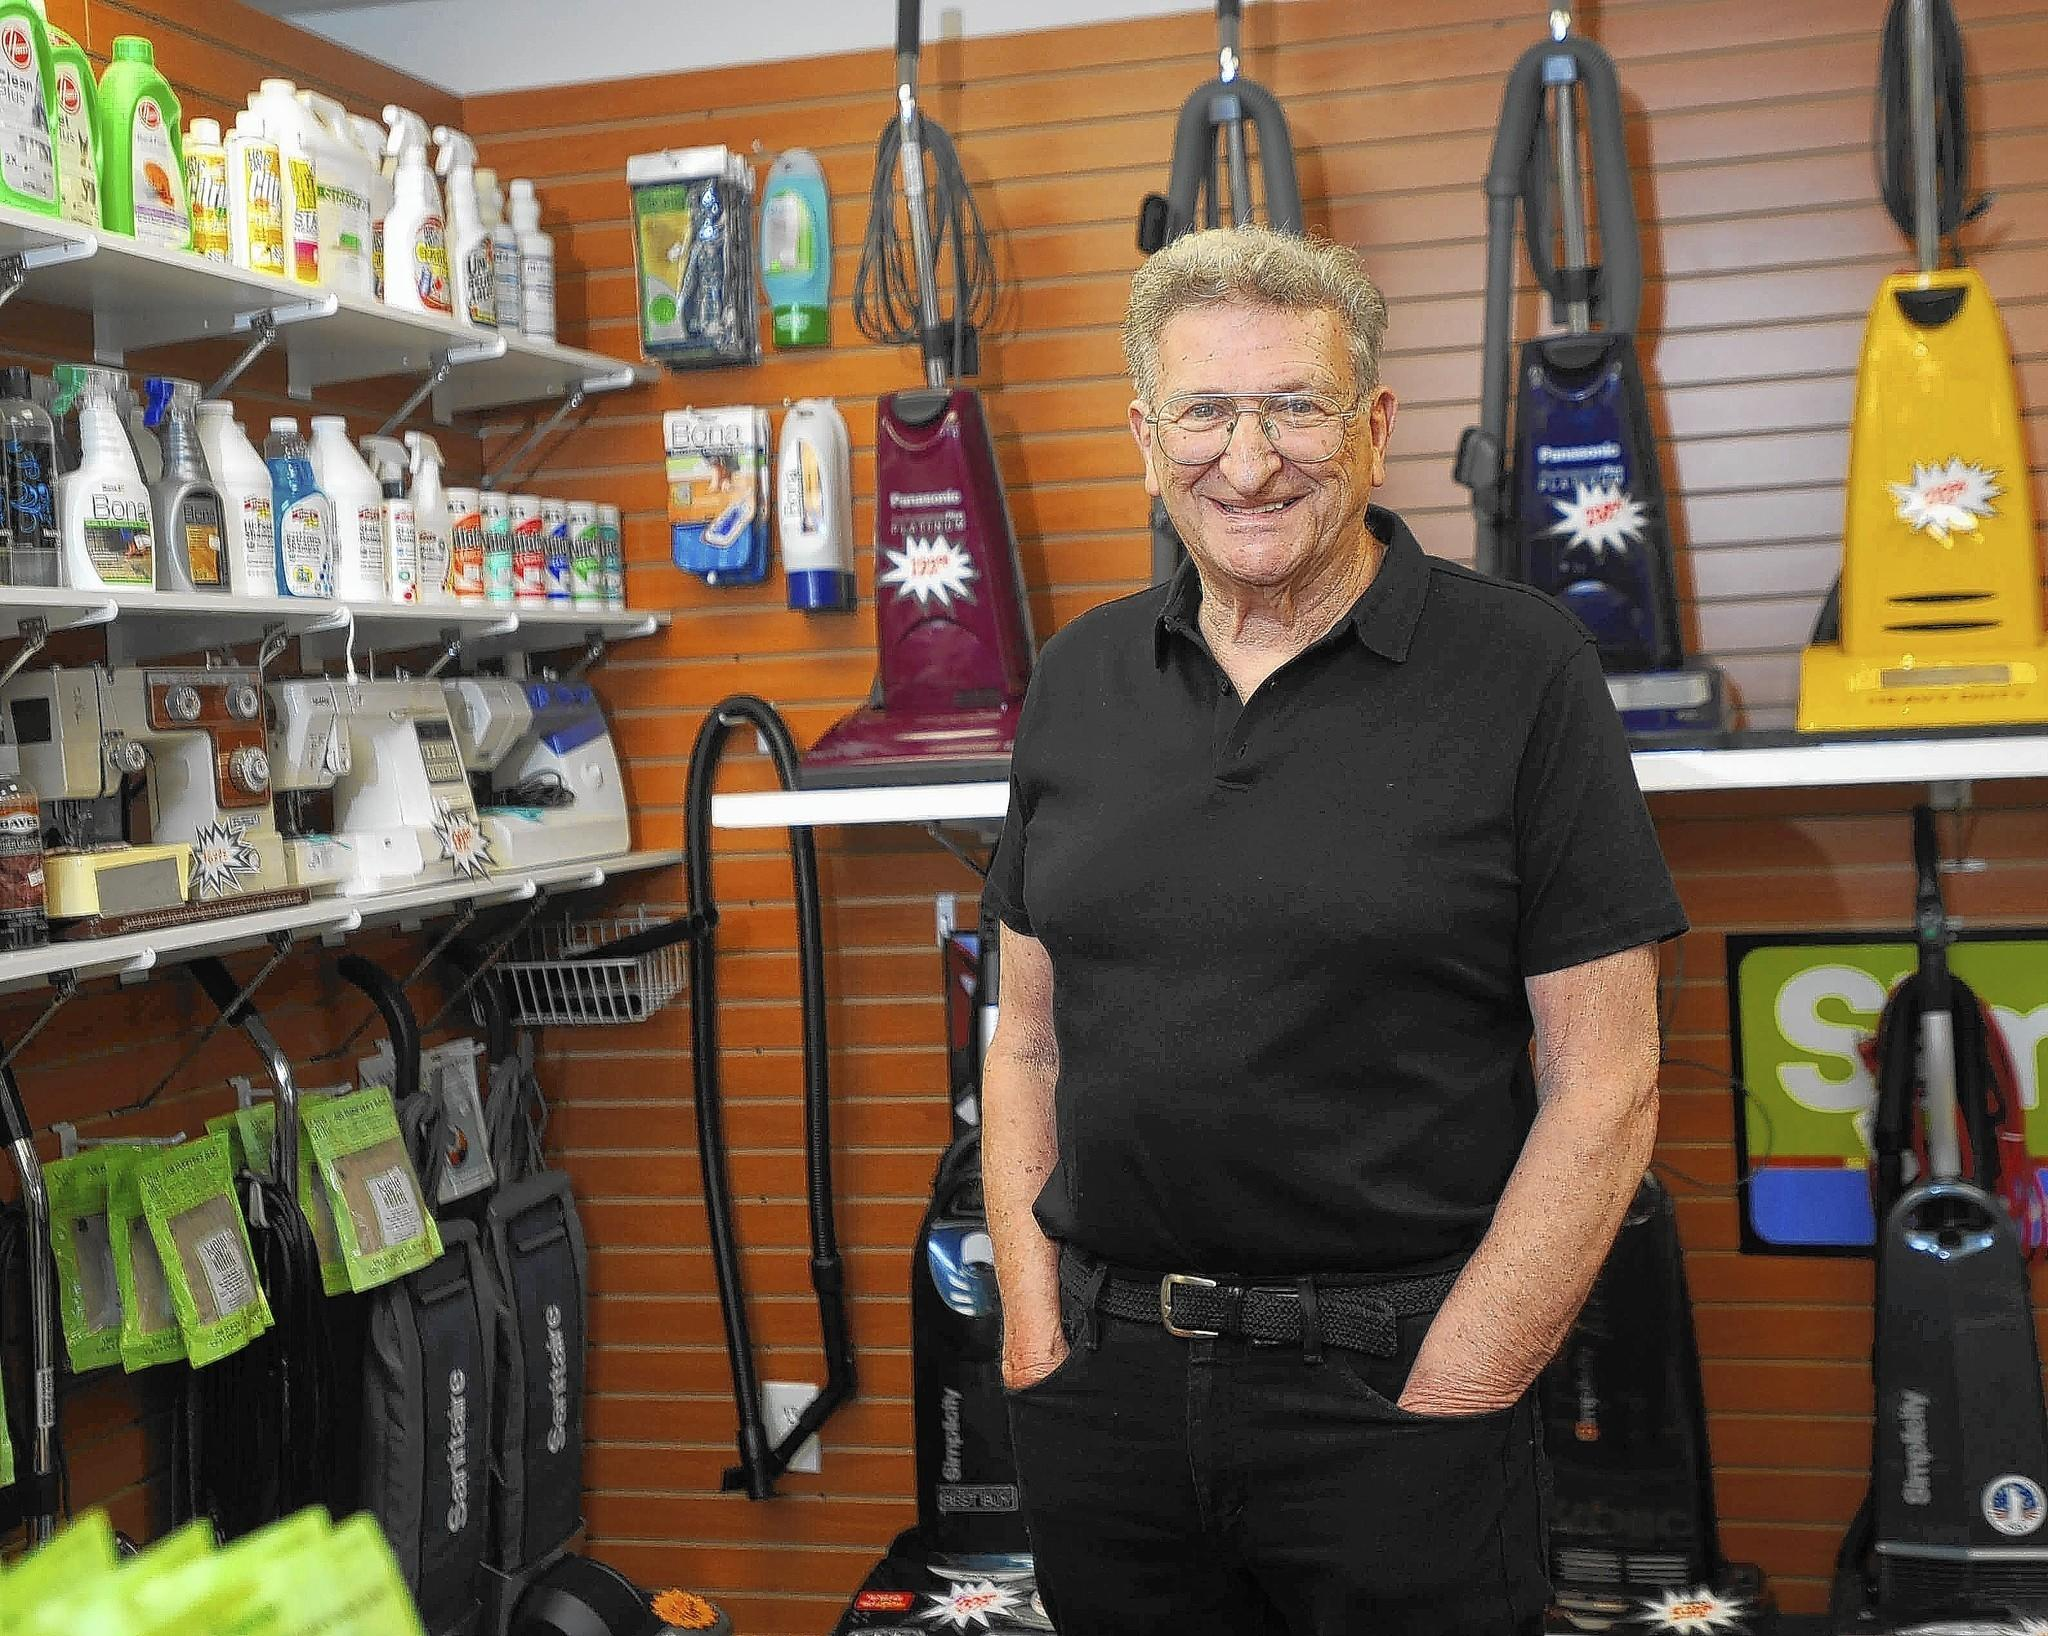 Morris Weiner, 80, is all smiles as he stands in Weiner's Vacs, the store on Reisterstown Road where he has sold and repaired vacuum cleaners for 44 years. These days Weiner is assisted by his daughter, Jeri Cuffley, who has been working in the busniness for 25 years.